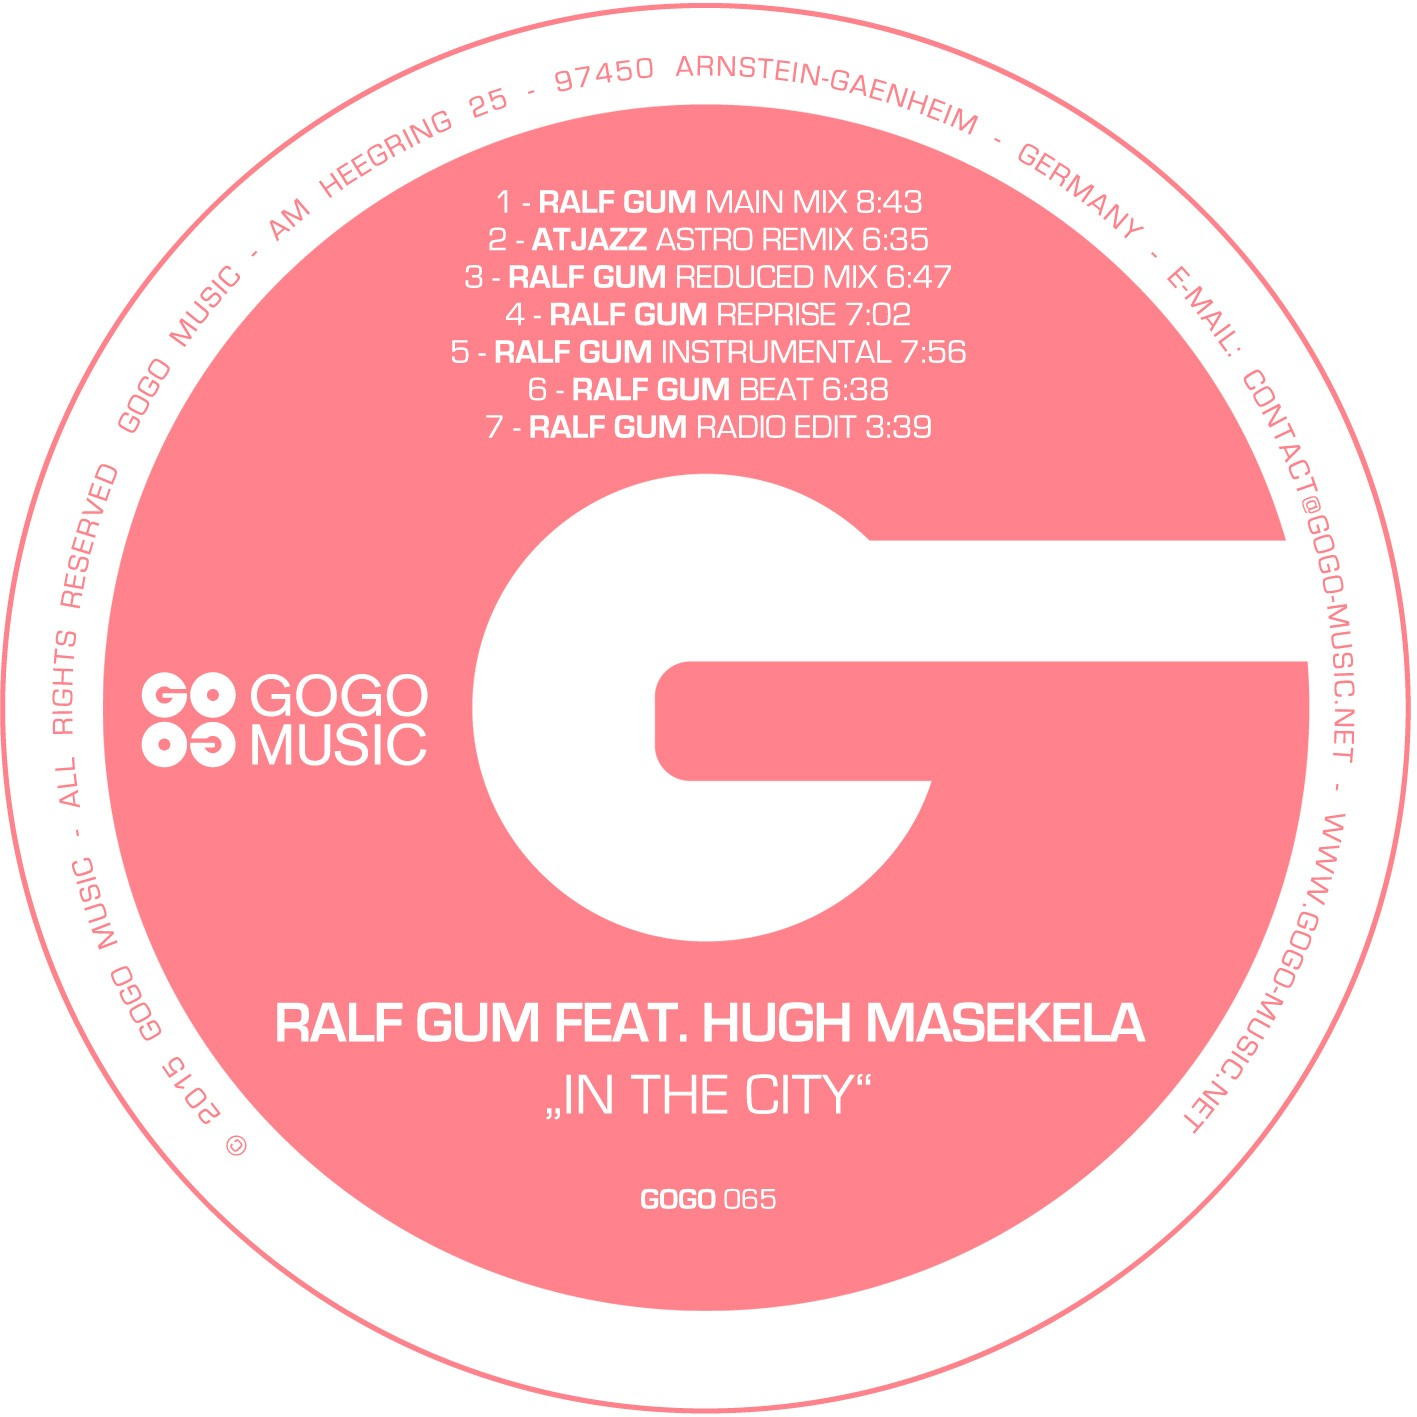 Ralf Gum feat Hugh Masekela- In The City (Atjazz Astro Remix)